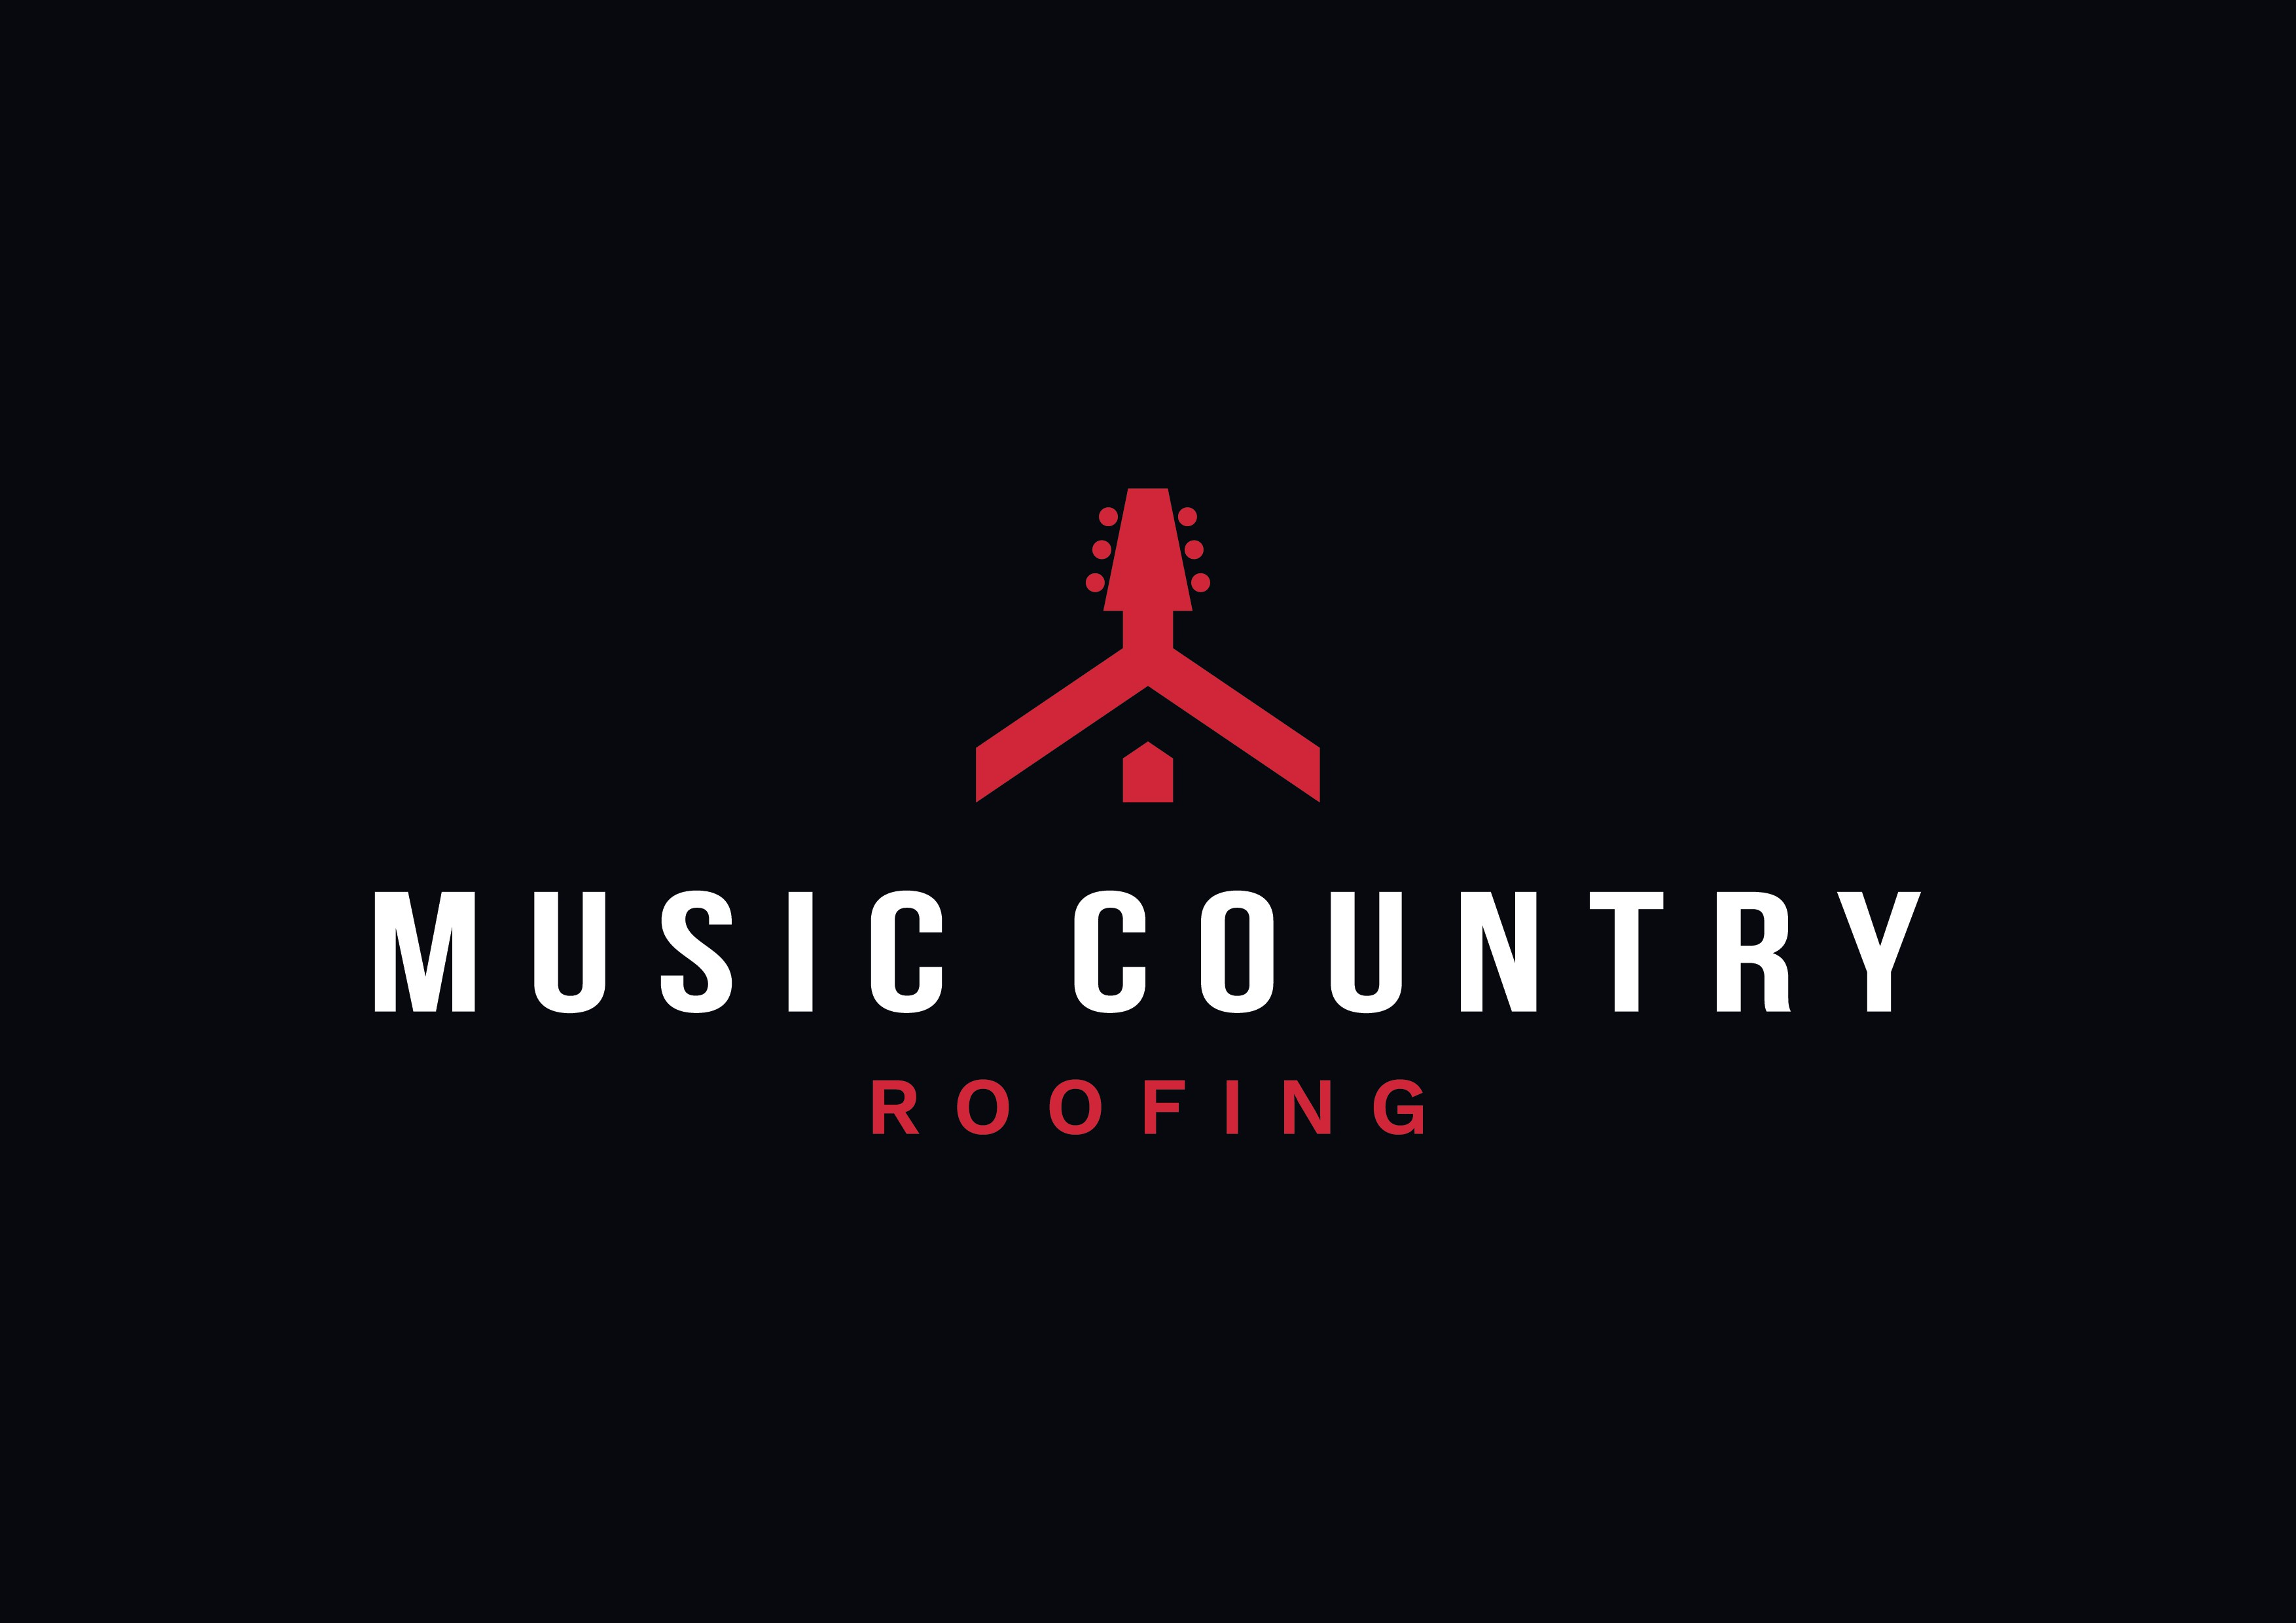 Best Roofing Company in Music City